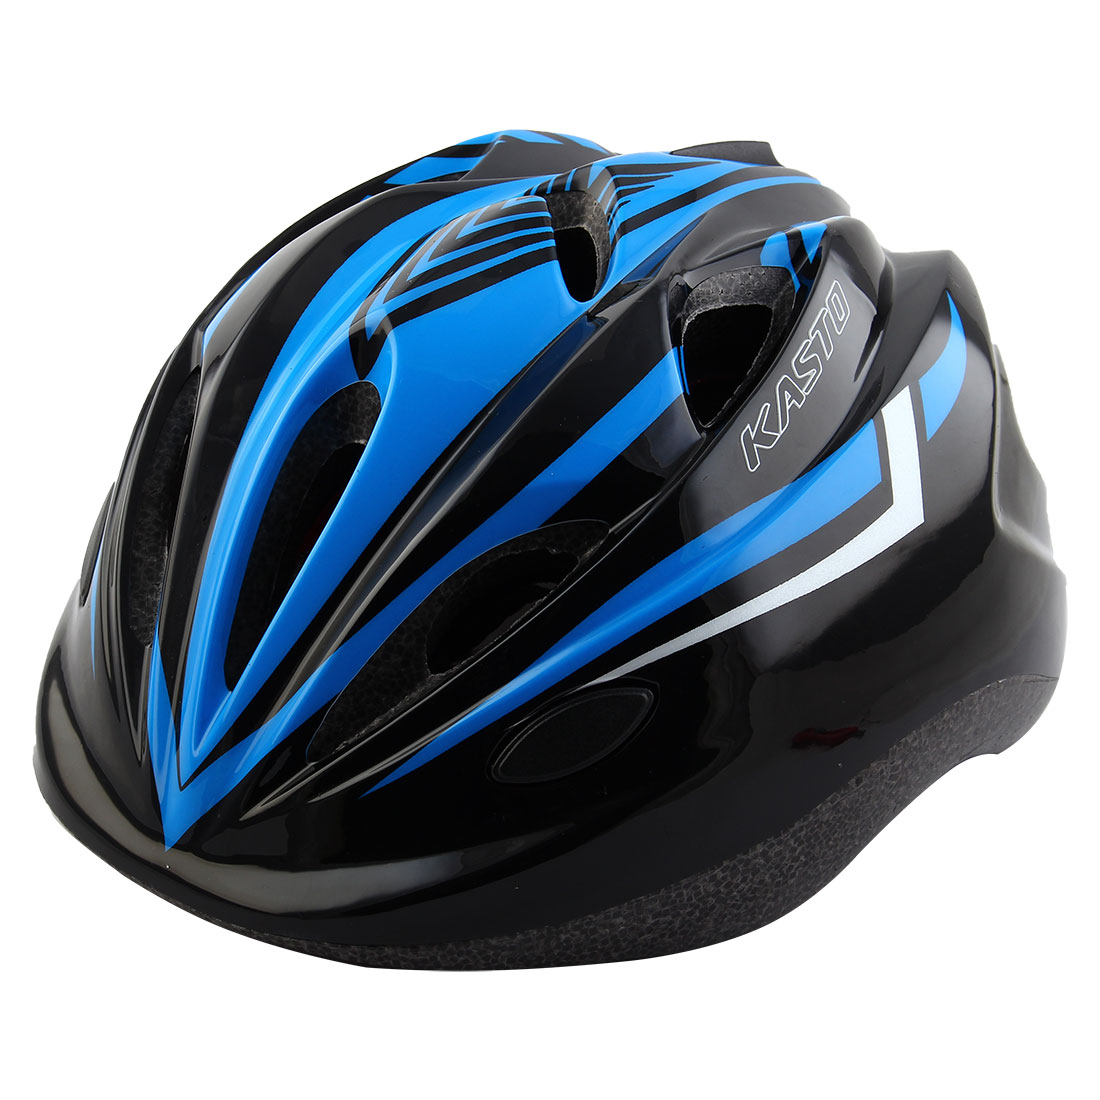 Boys Girls Adjustable Belt Removable Liner Road Cycling Mountain Bicycle Cap Safety Bike Helmet Black Blue